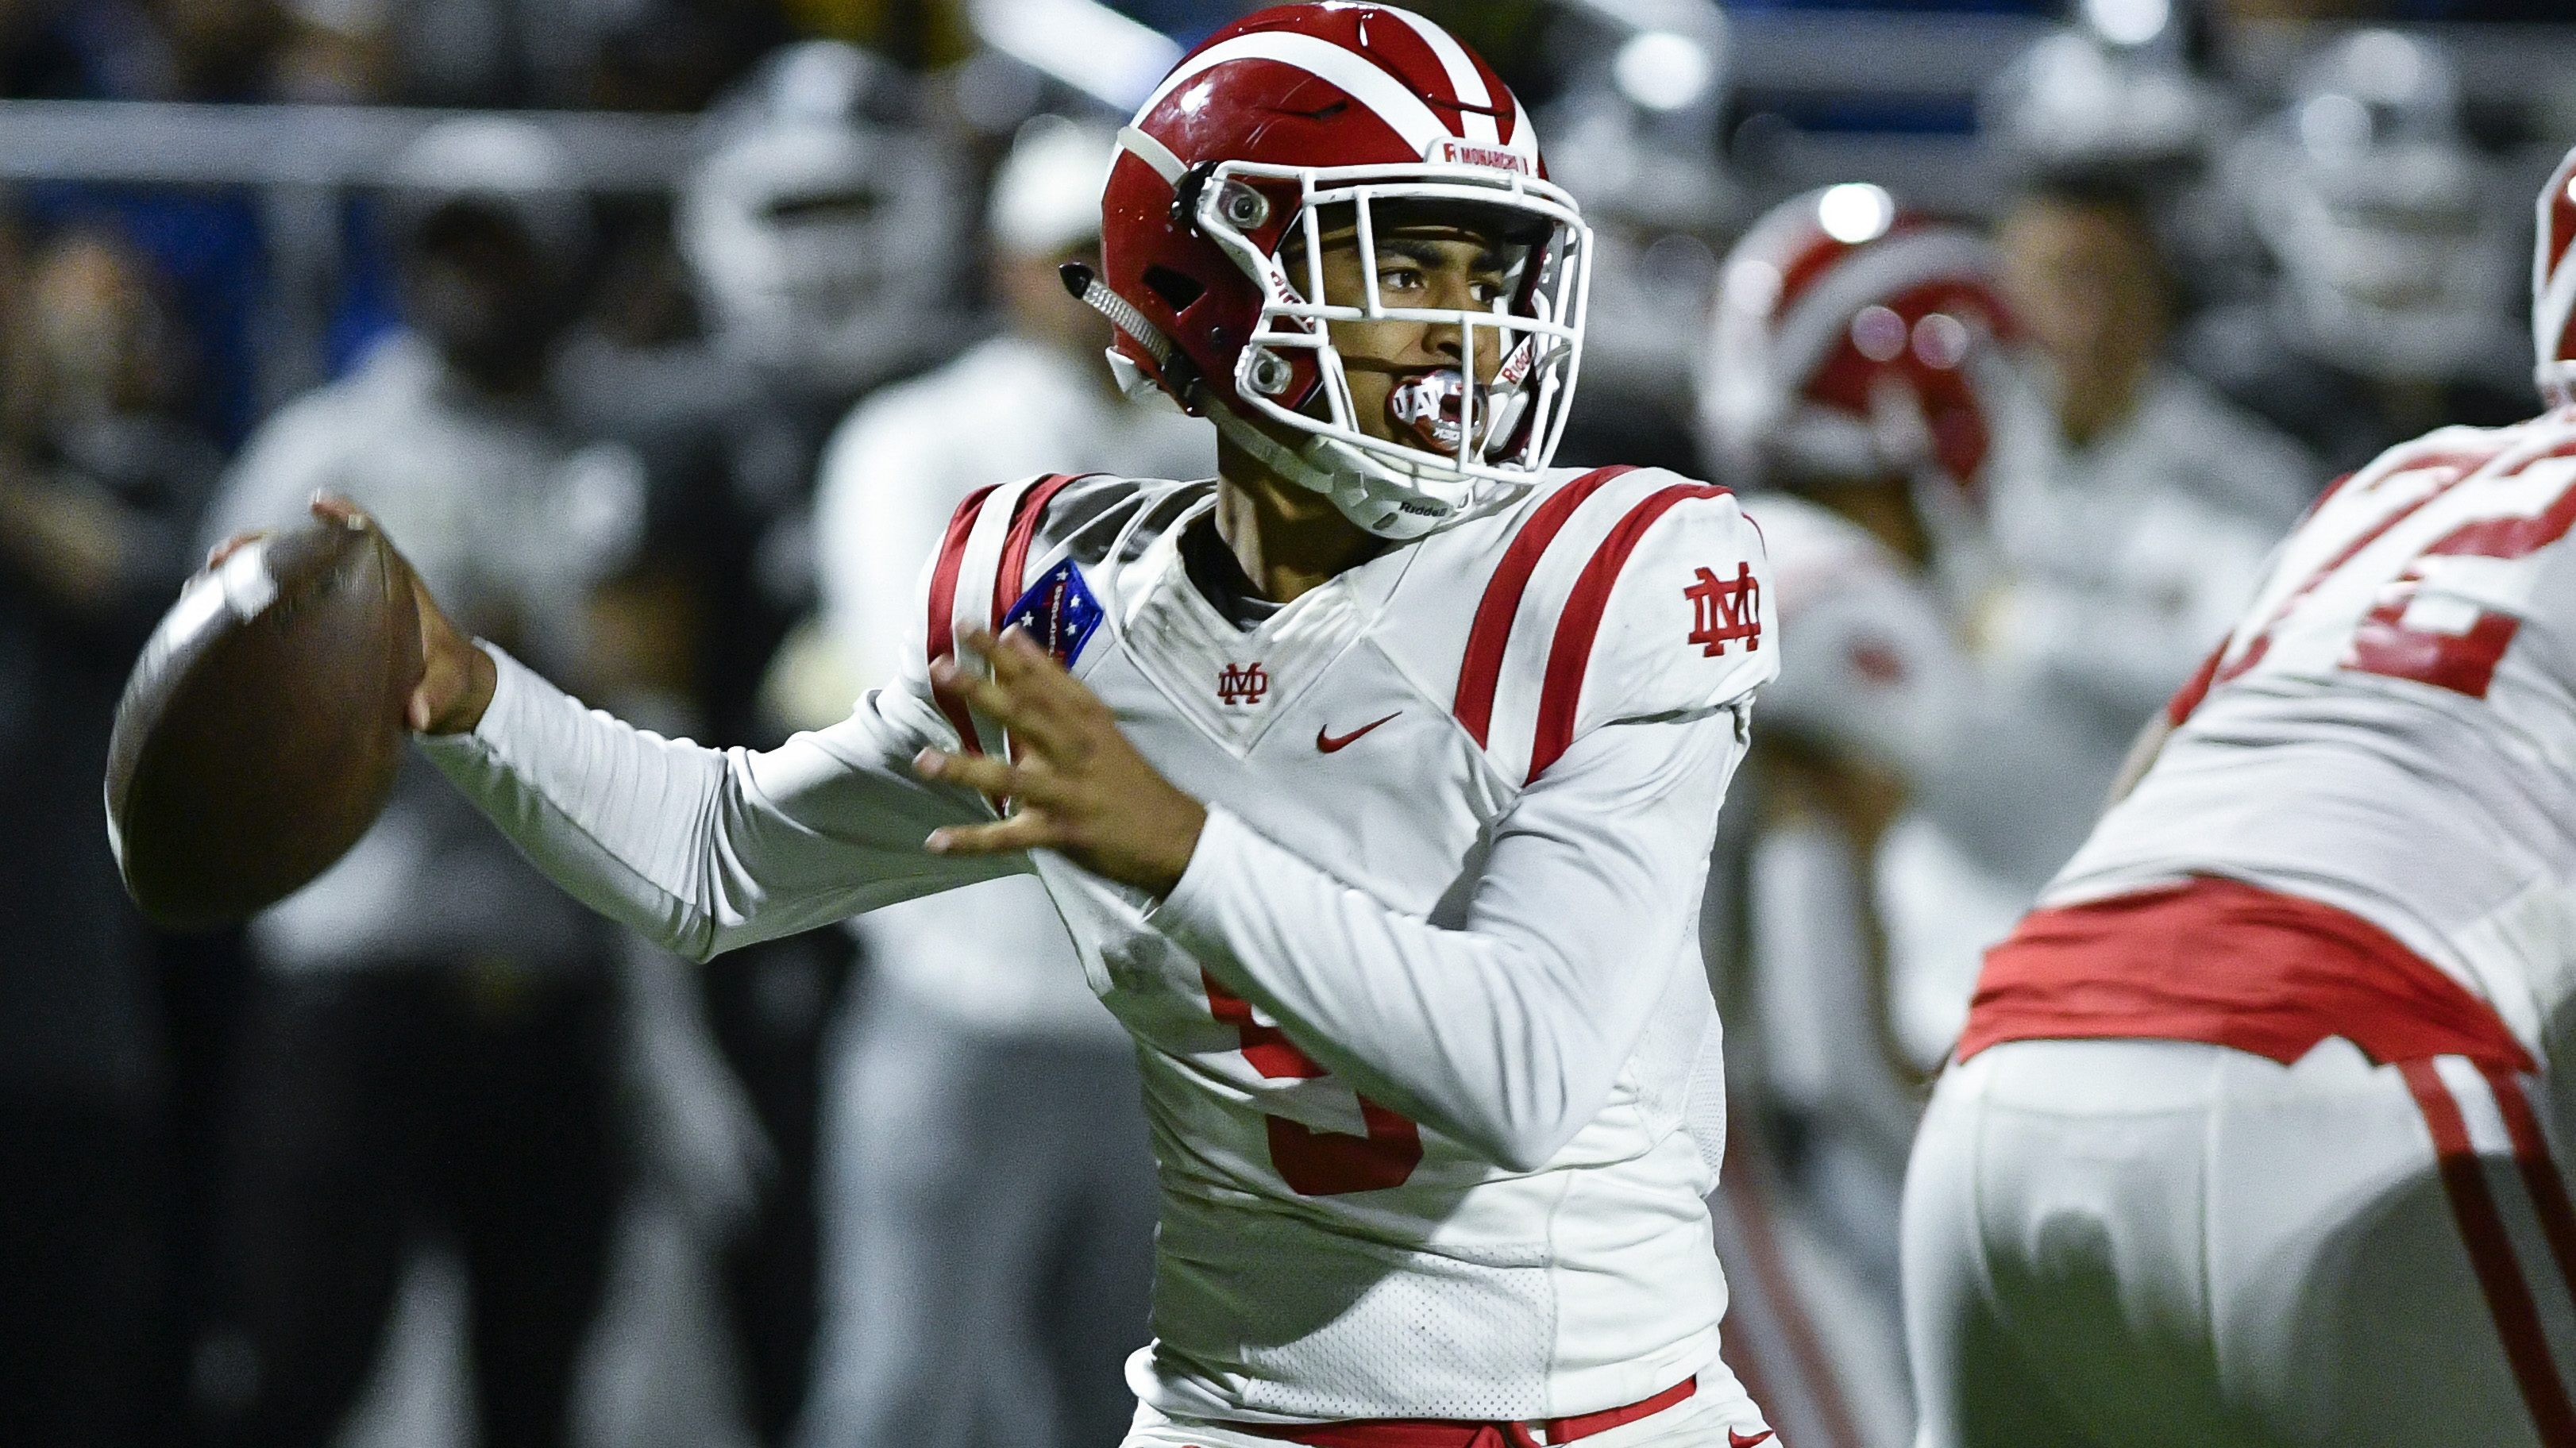 2019-20 ALL-USA High School Football Offensive Player of the Year: Bryce Young, Mater Dei